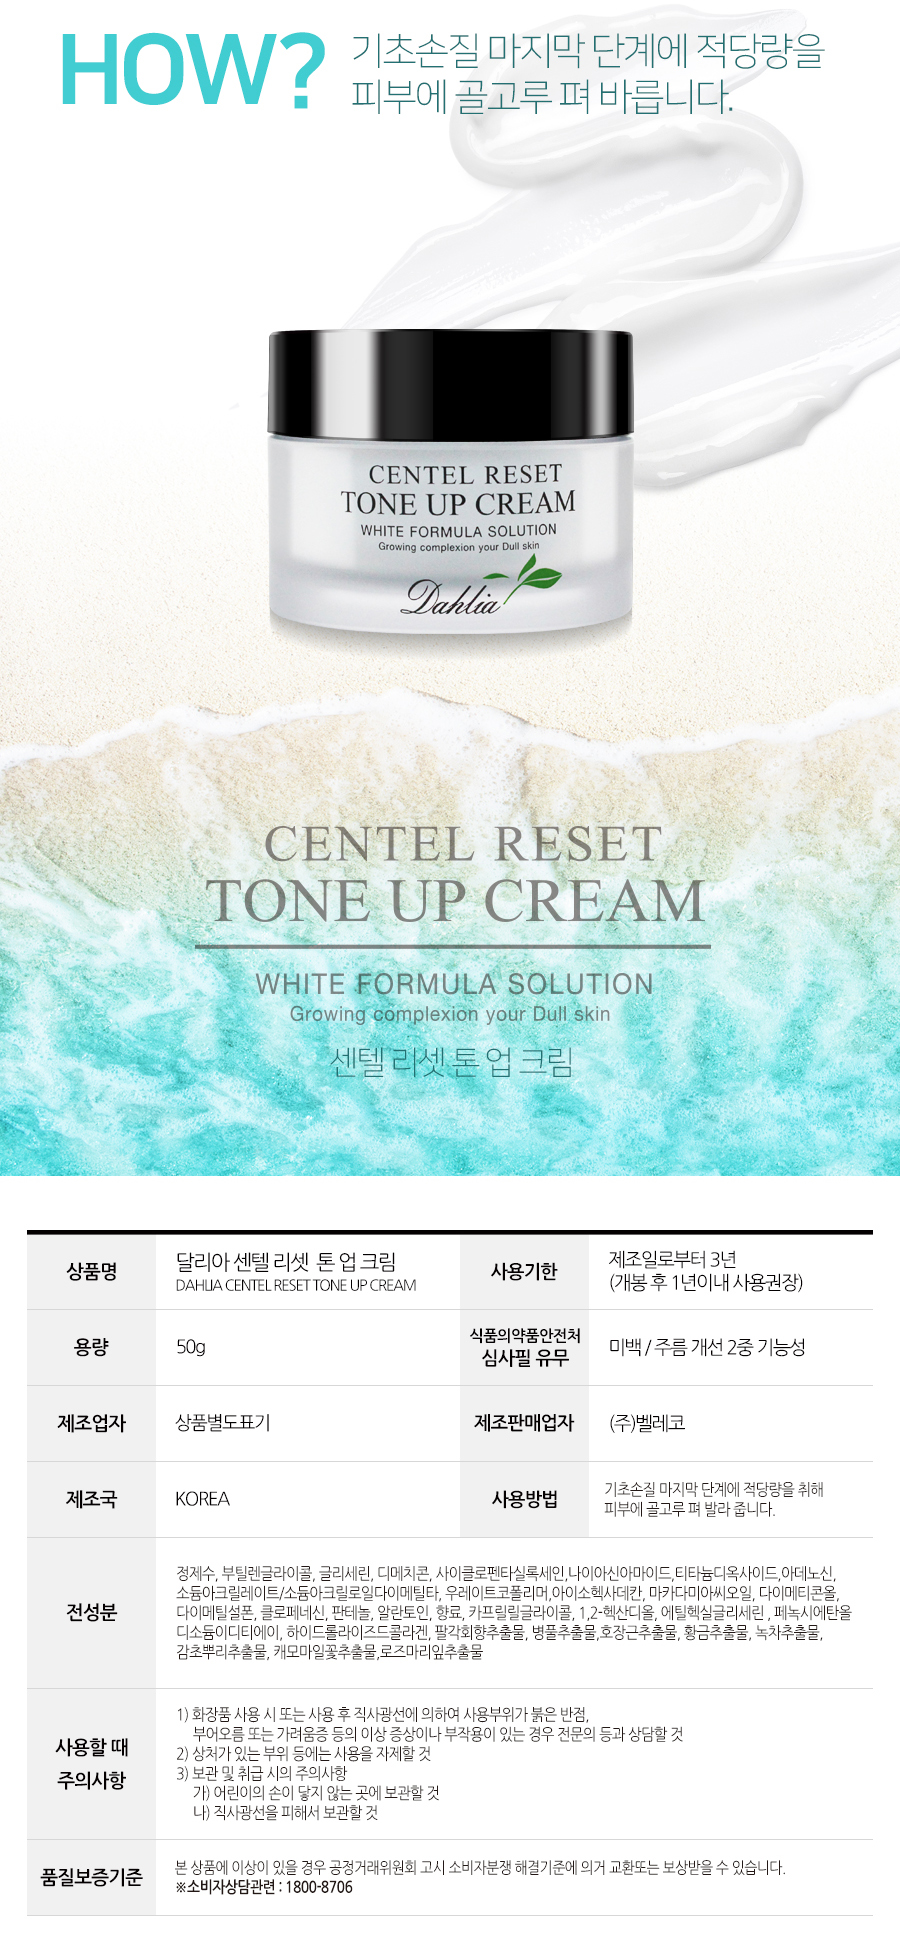 korean_cosmetic_tone_up_cream_base_makeup_Dahlia_centel_Reset_Cream 06